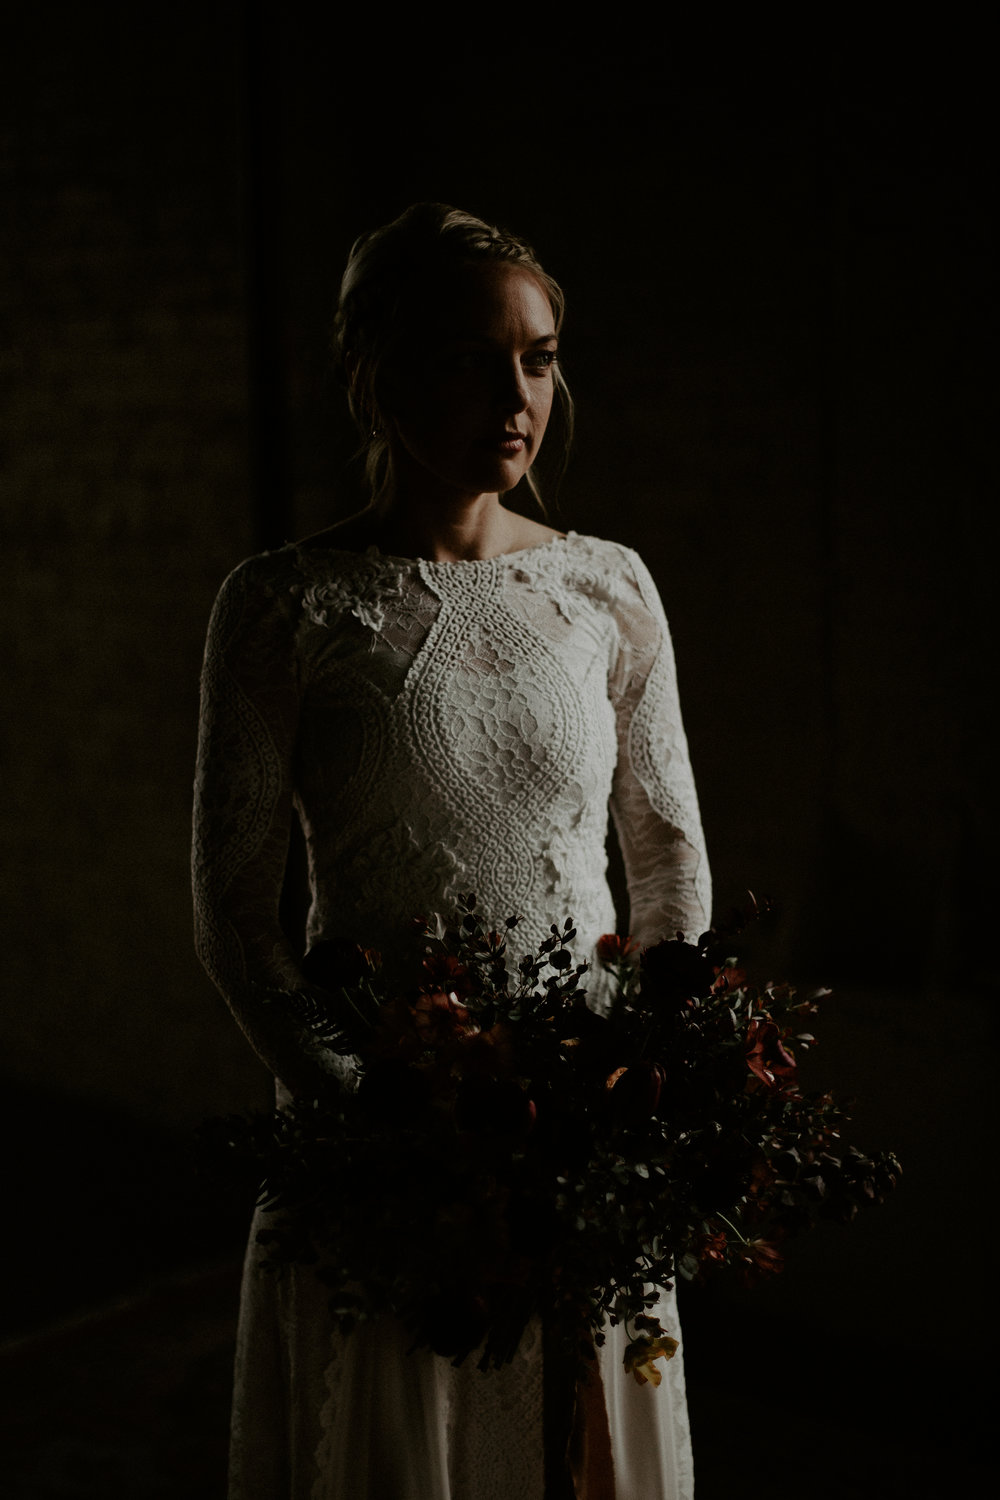 The_Steam_Plant_Dayton_Wedding-EDIT-142.jpg